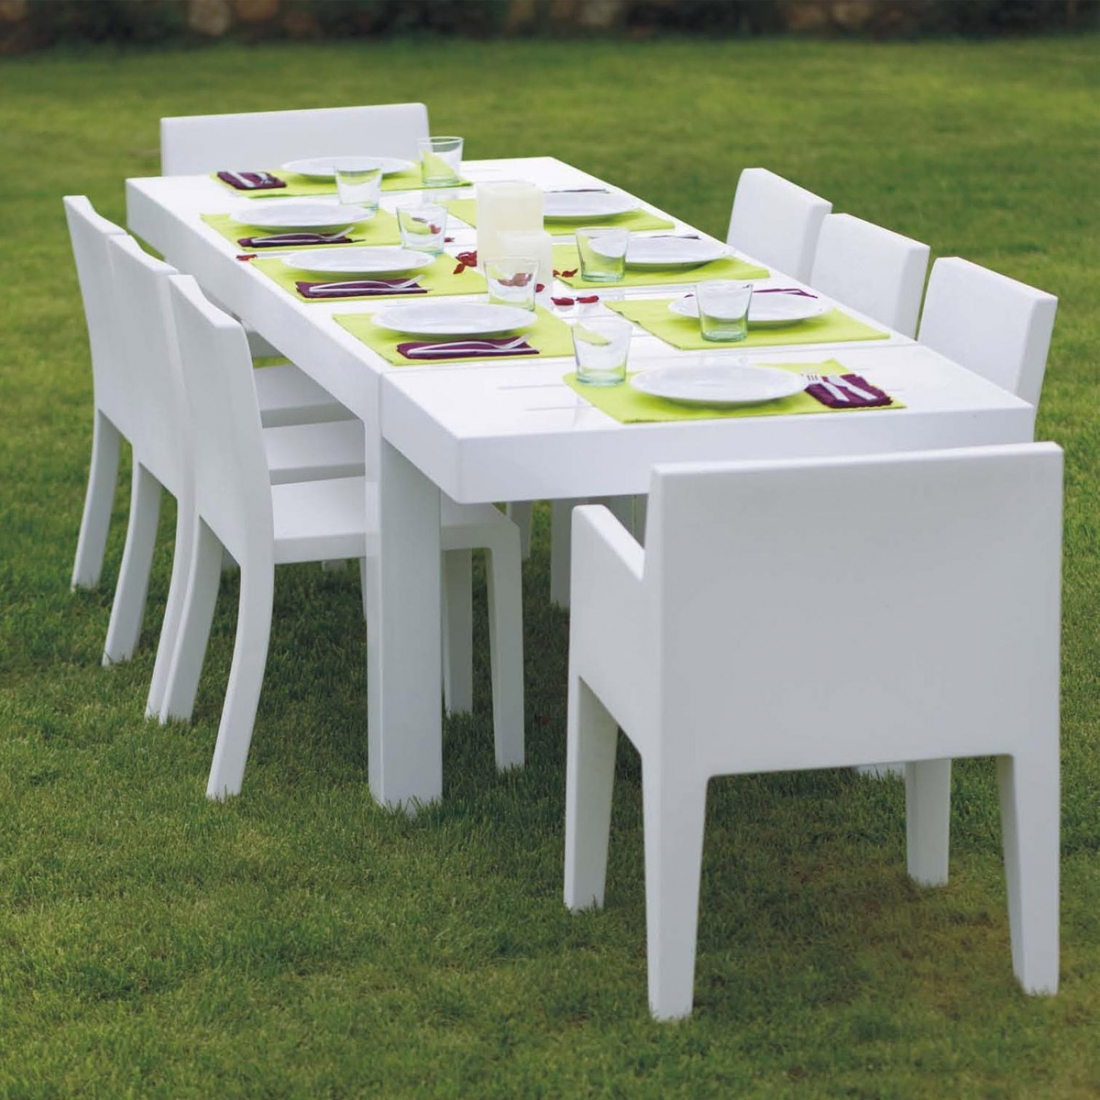 Table de jardin design 10 personnes jut par vondom for Jardin design exterieur